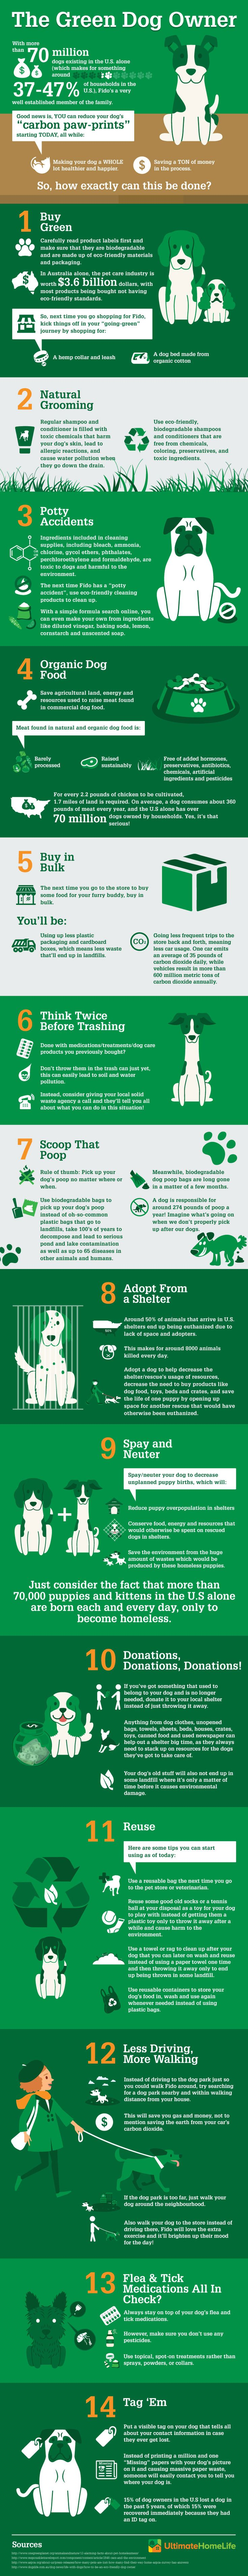 The Green Dog Owners Guide. Are you a dog owner? Check out this guide that will help you take care of your dog in an eco-friendly way.